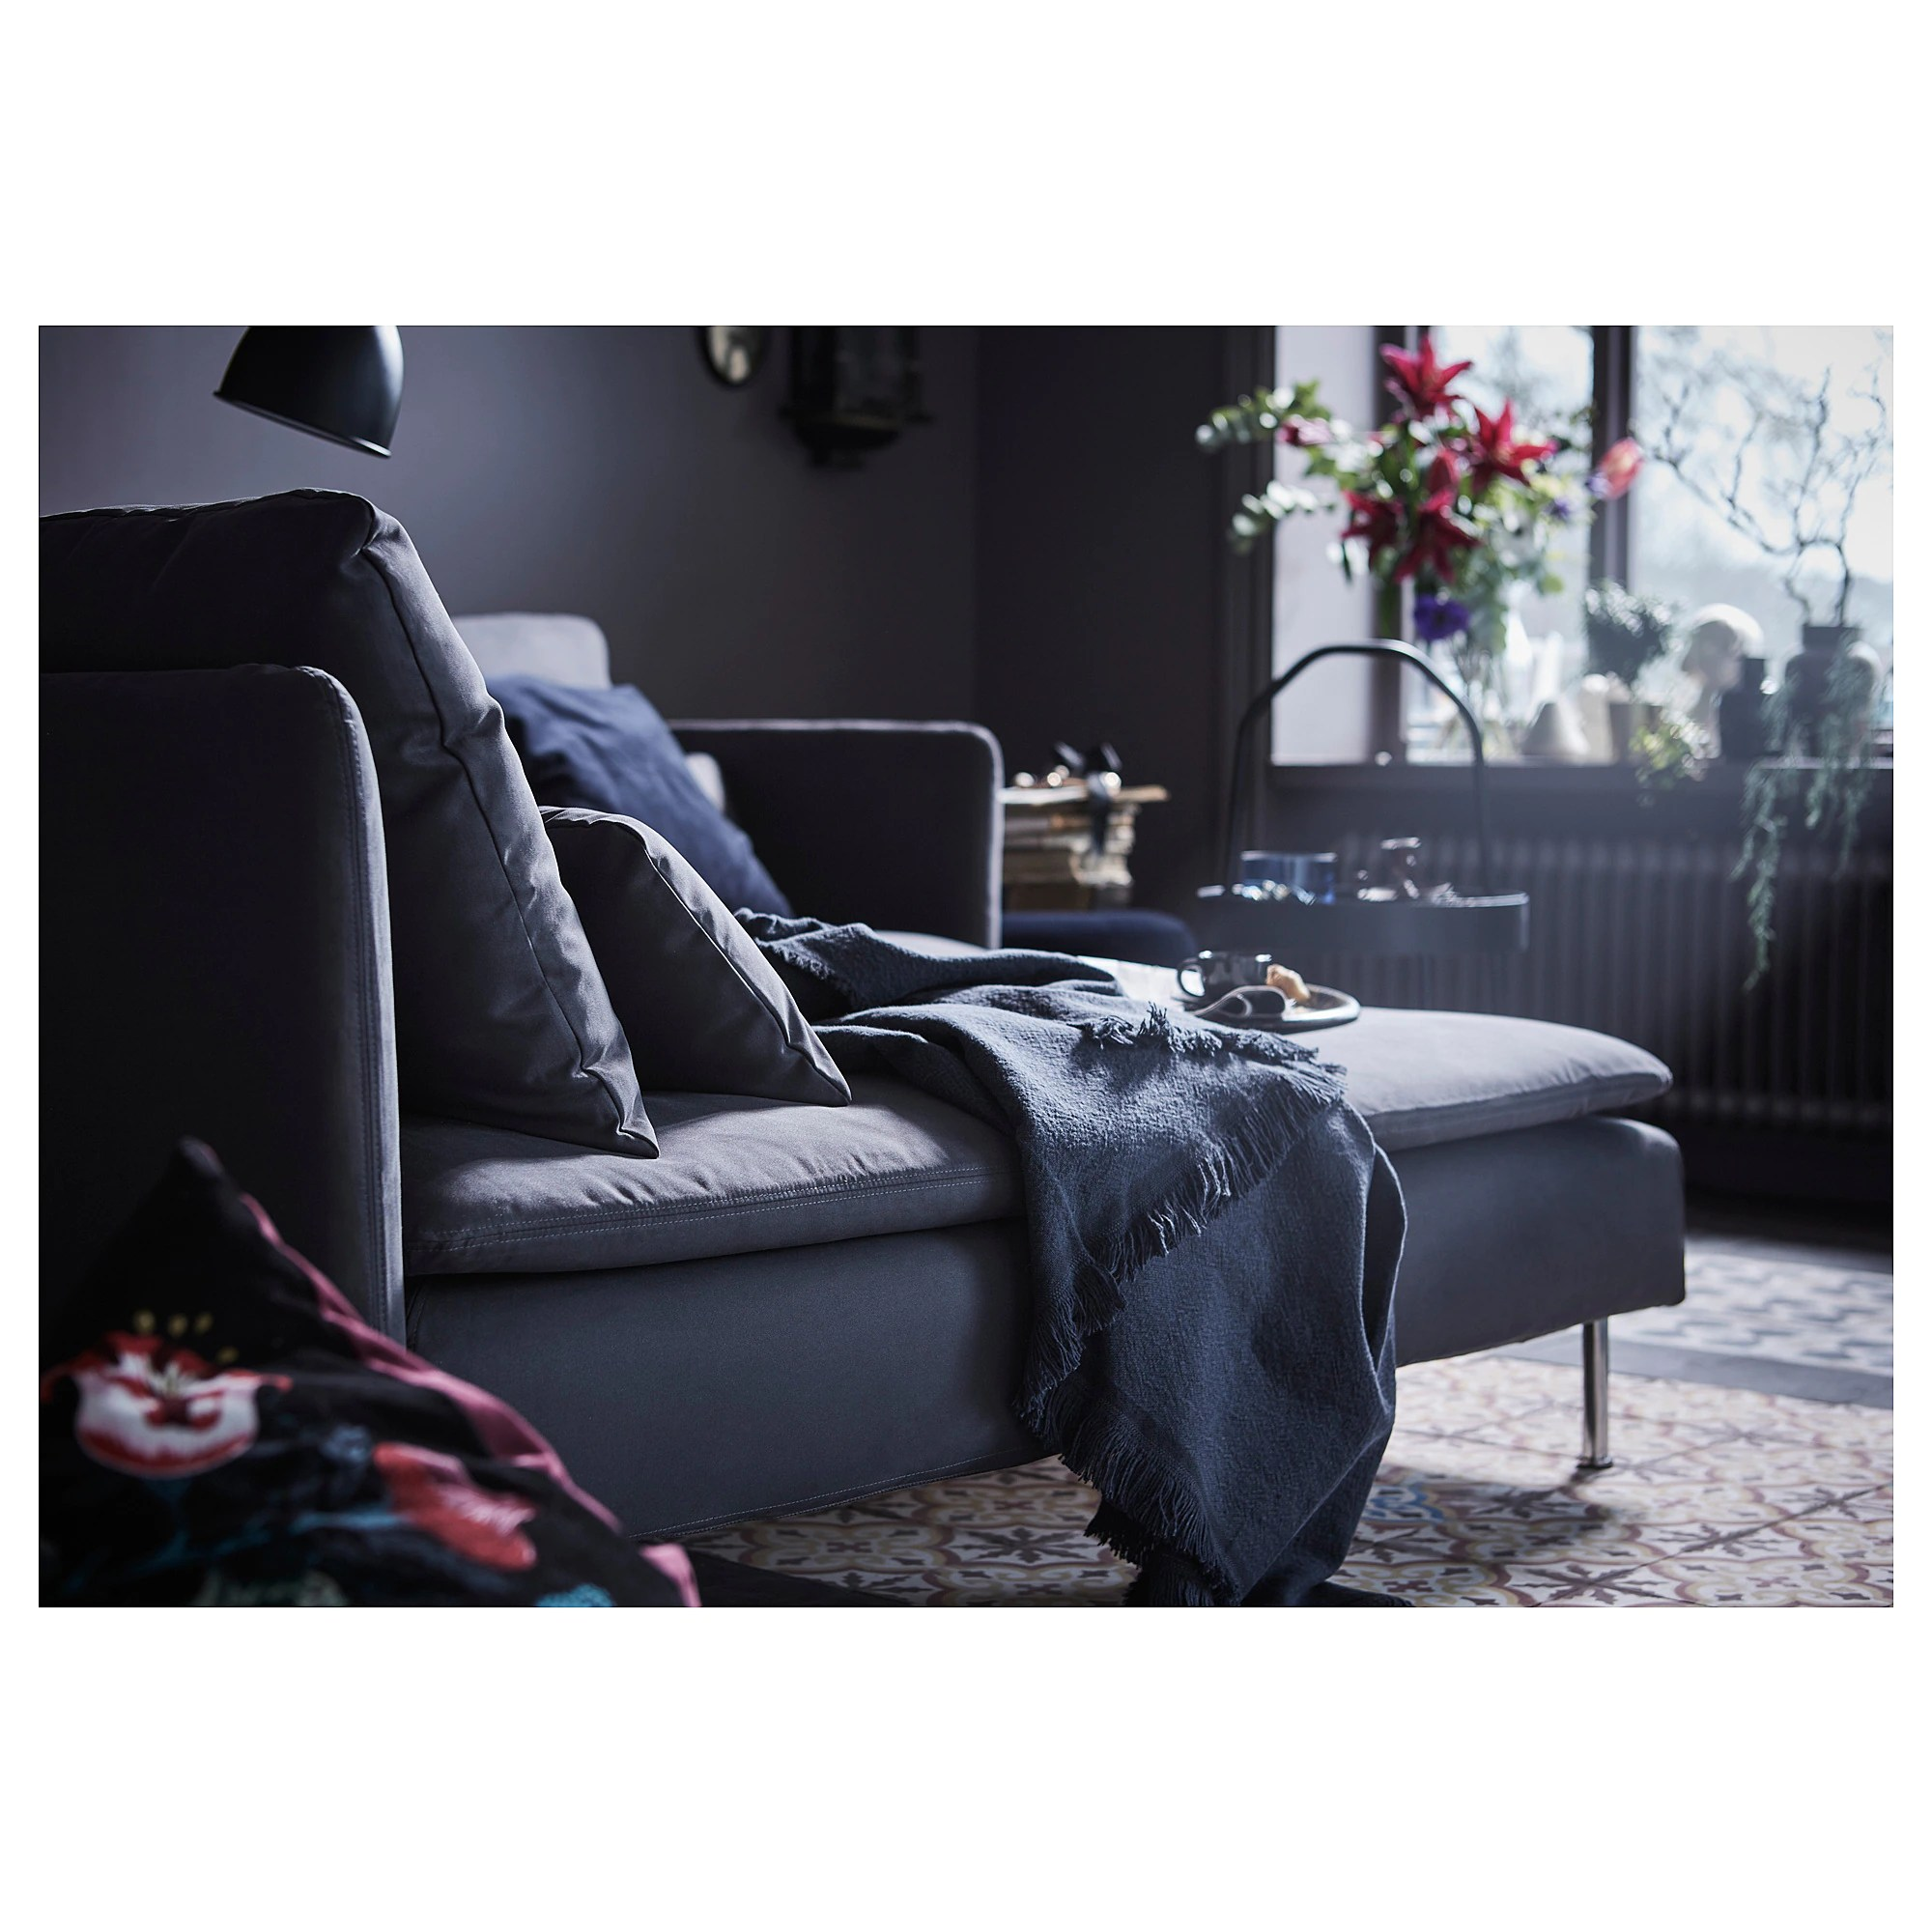 Chaise Longue Söderhamn Samsta Dark Grey